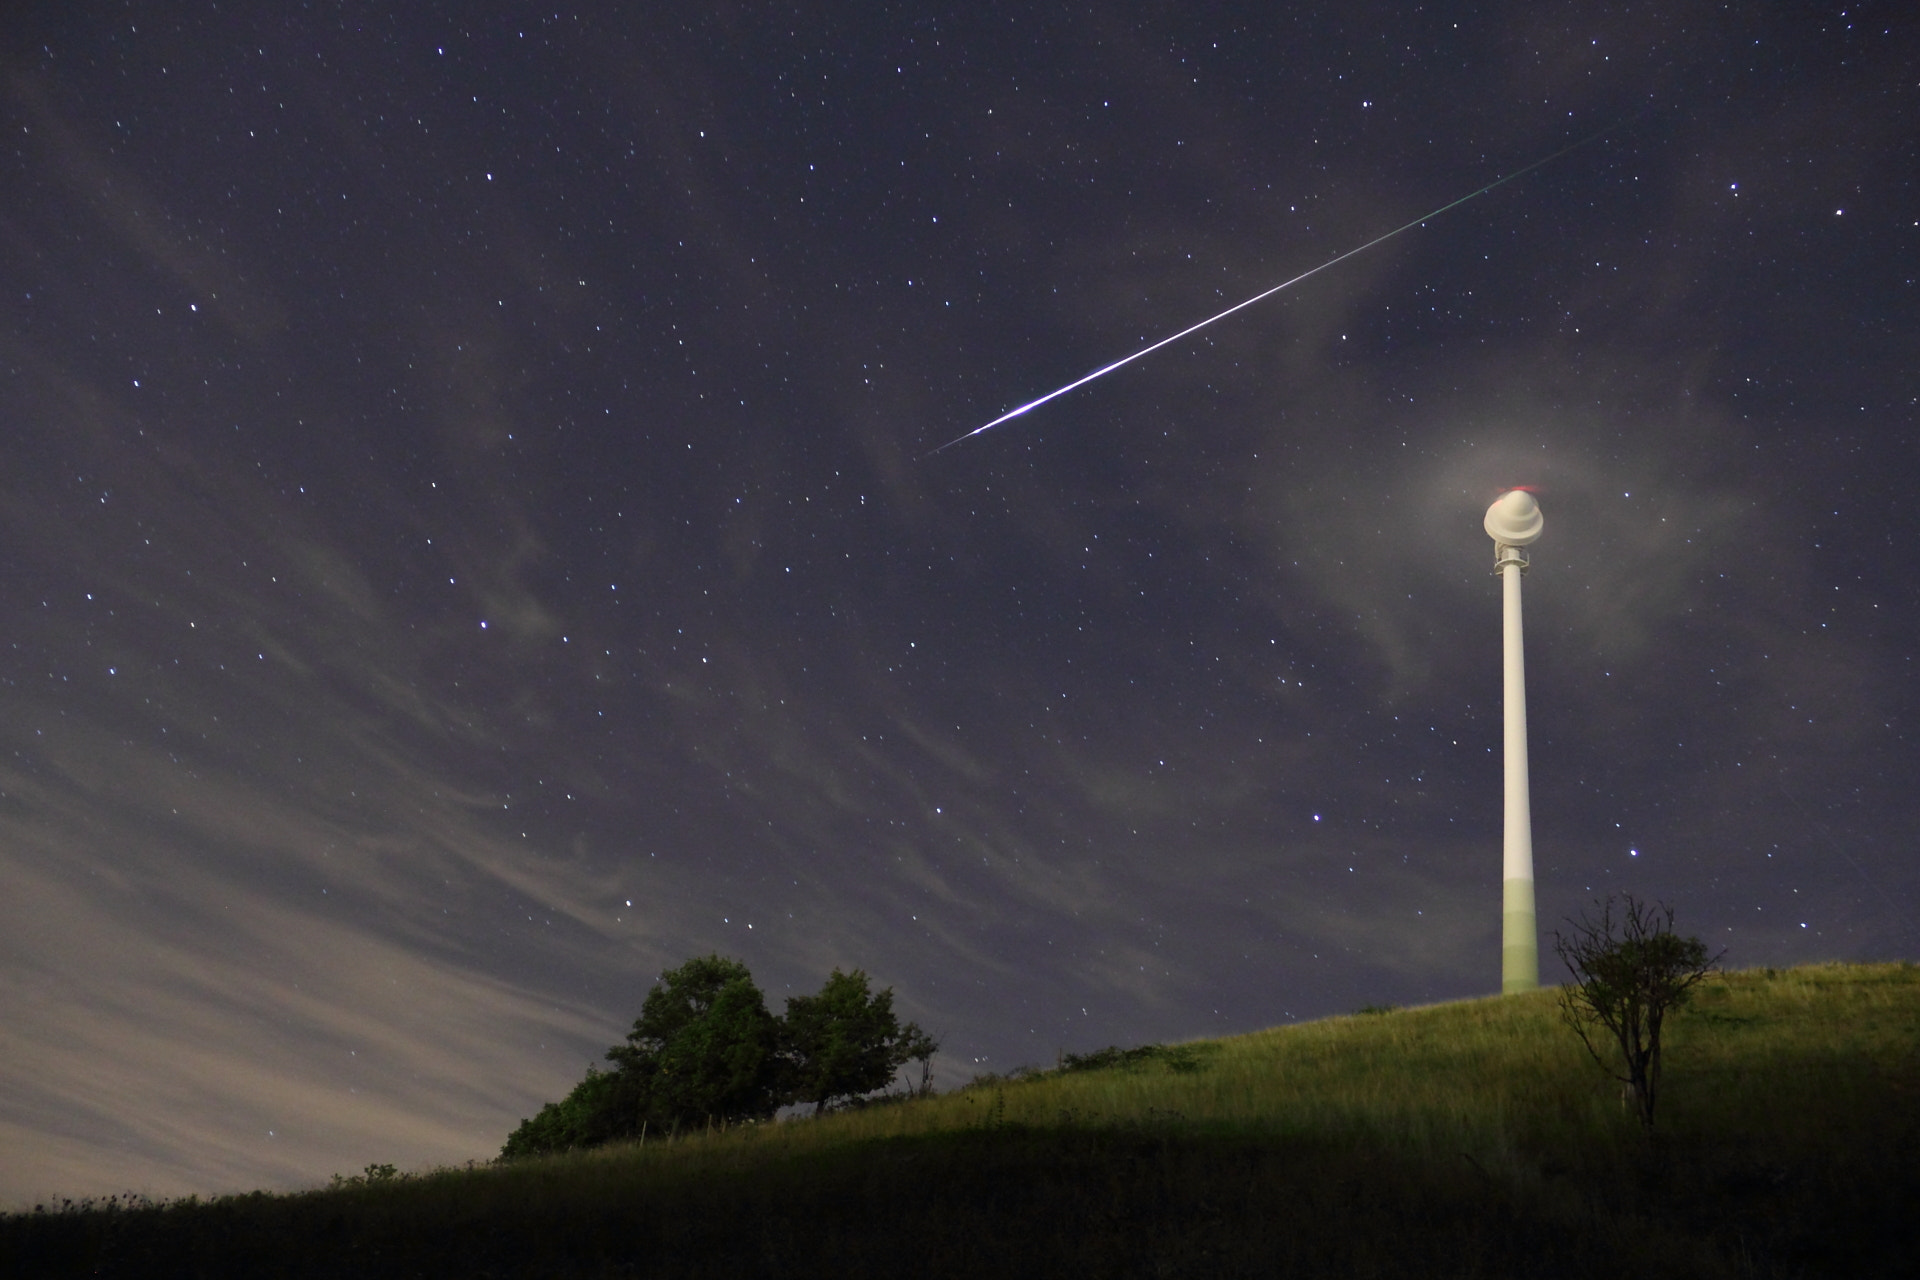 Photograph shooting star by 8rcturus on 500px